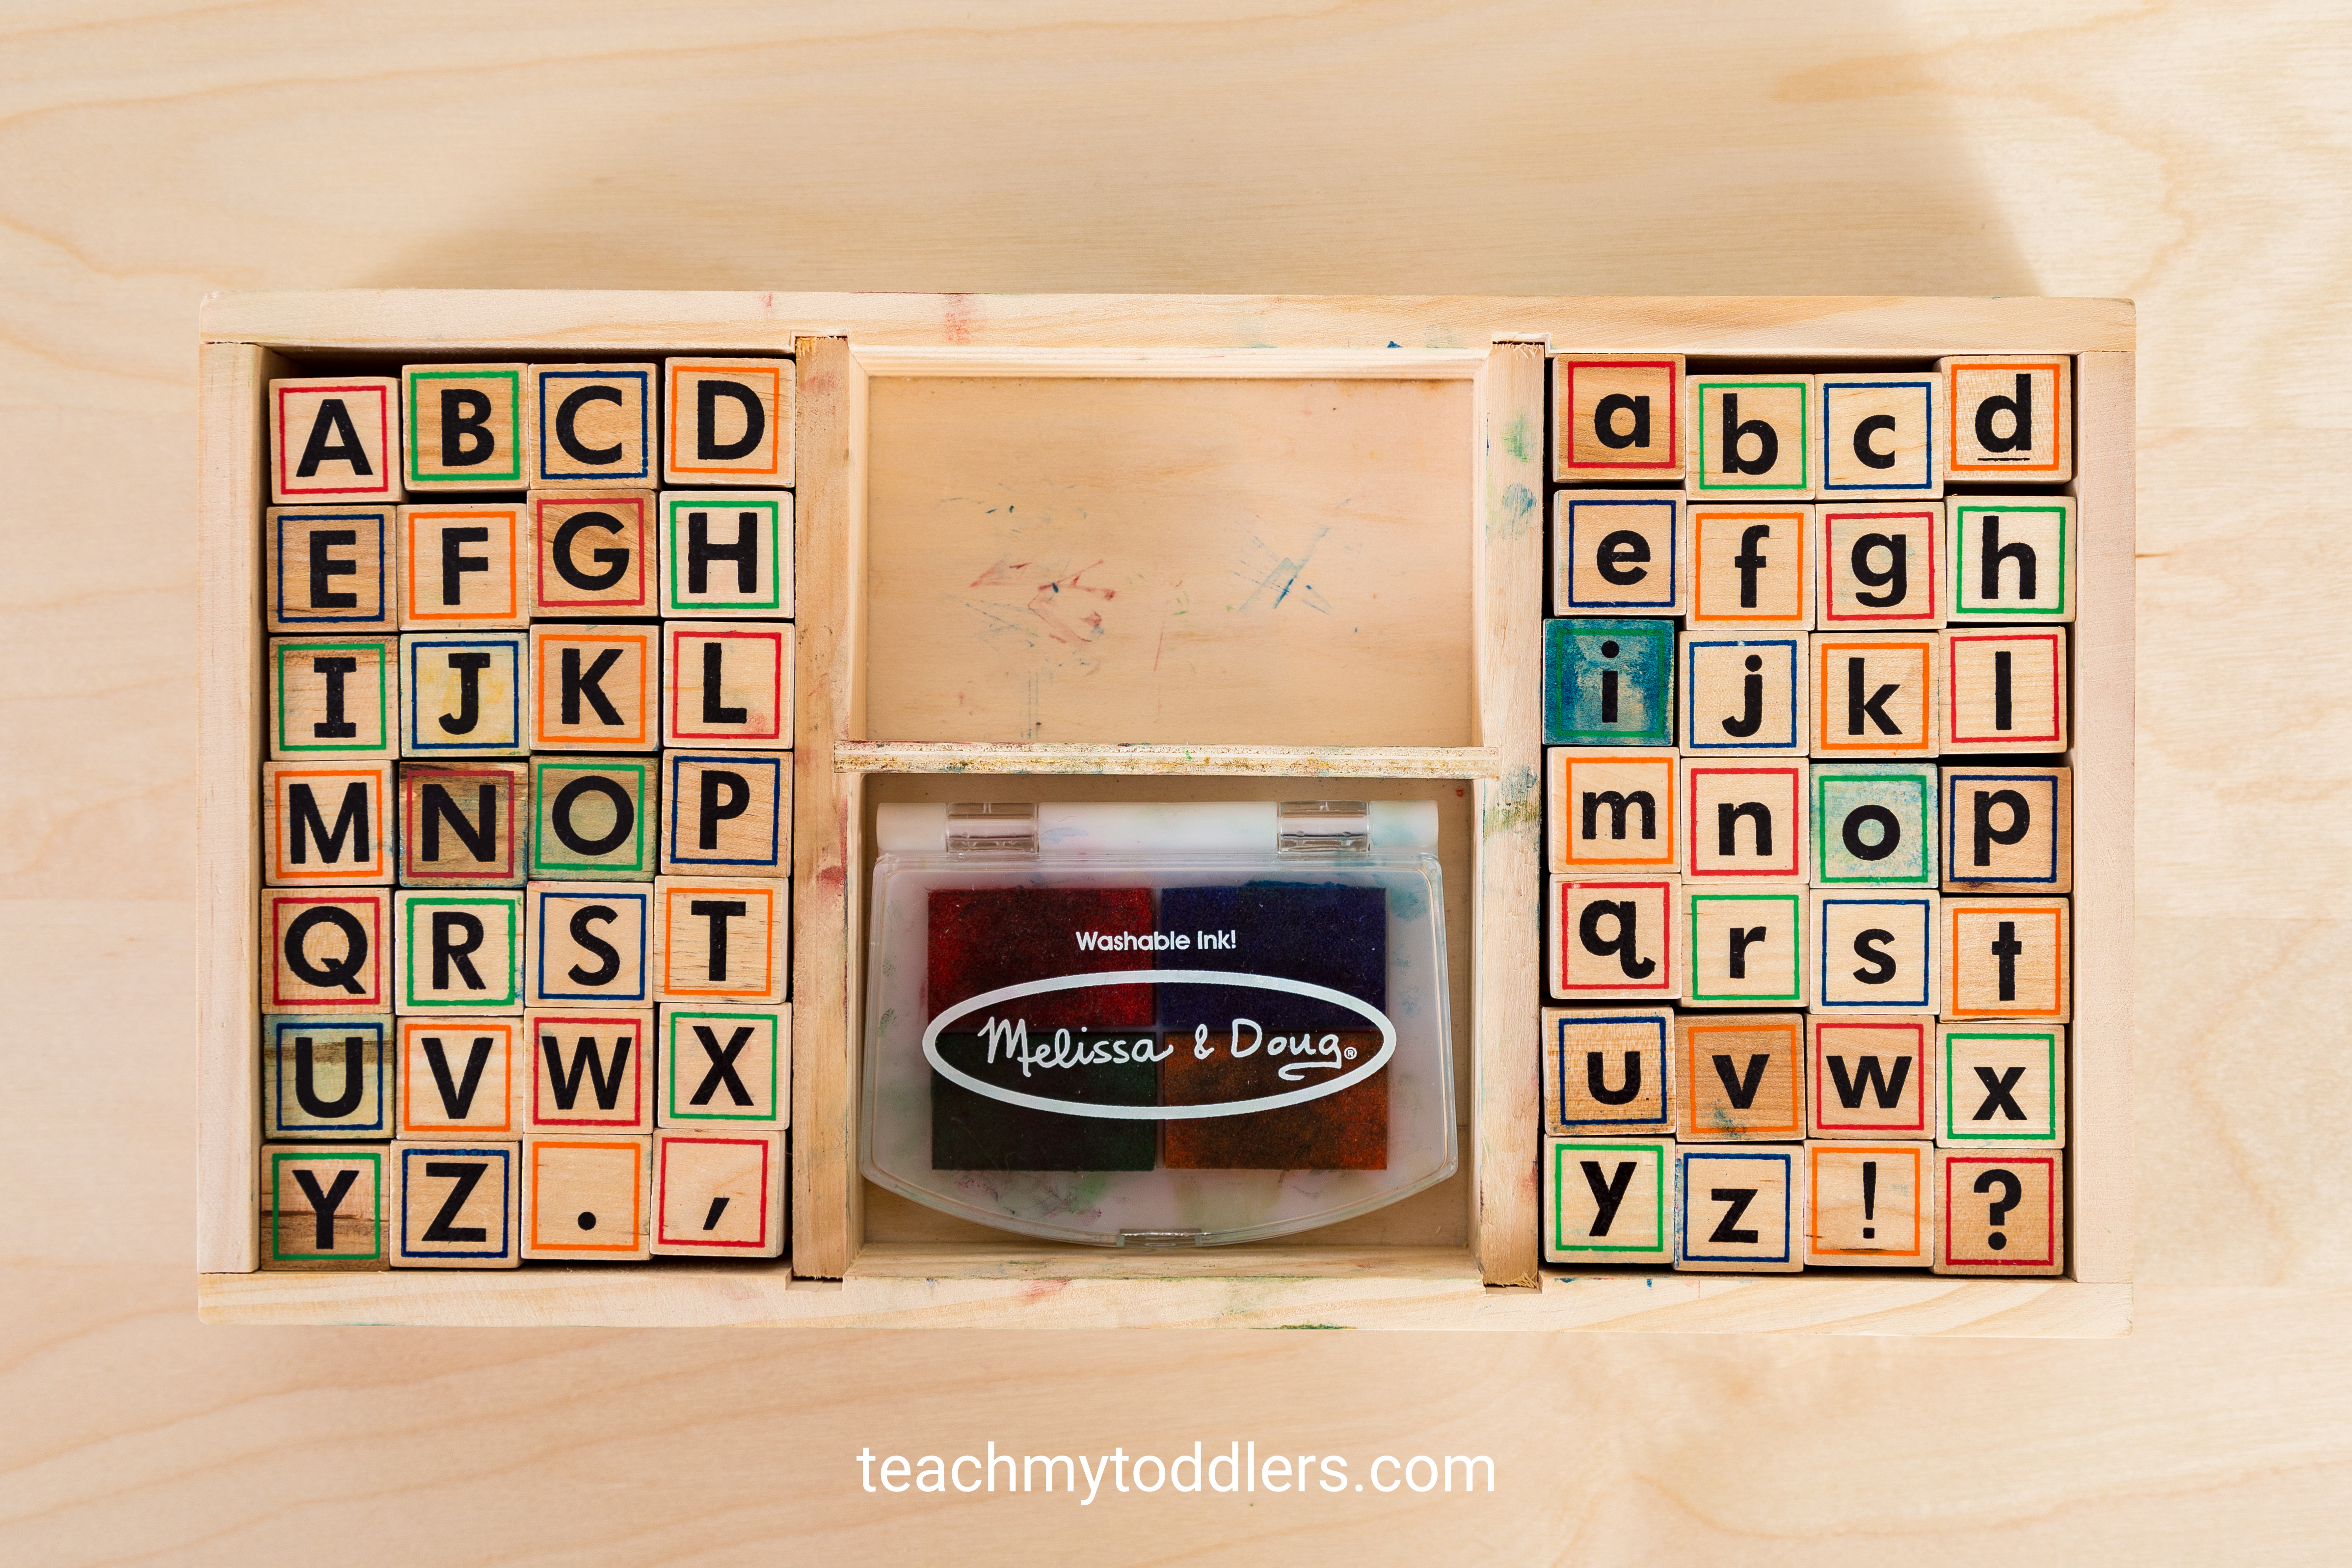 These alphabet stamps are a hands on way to teach toddlers letters